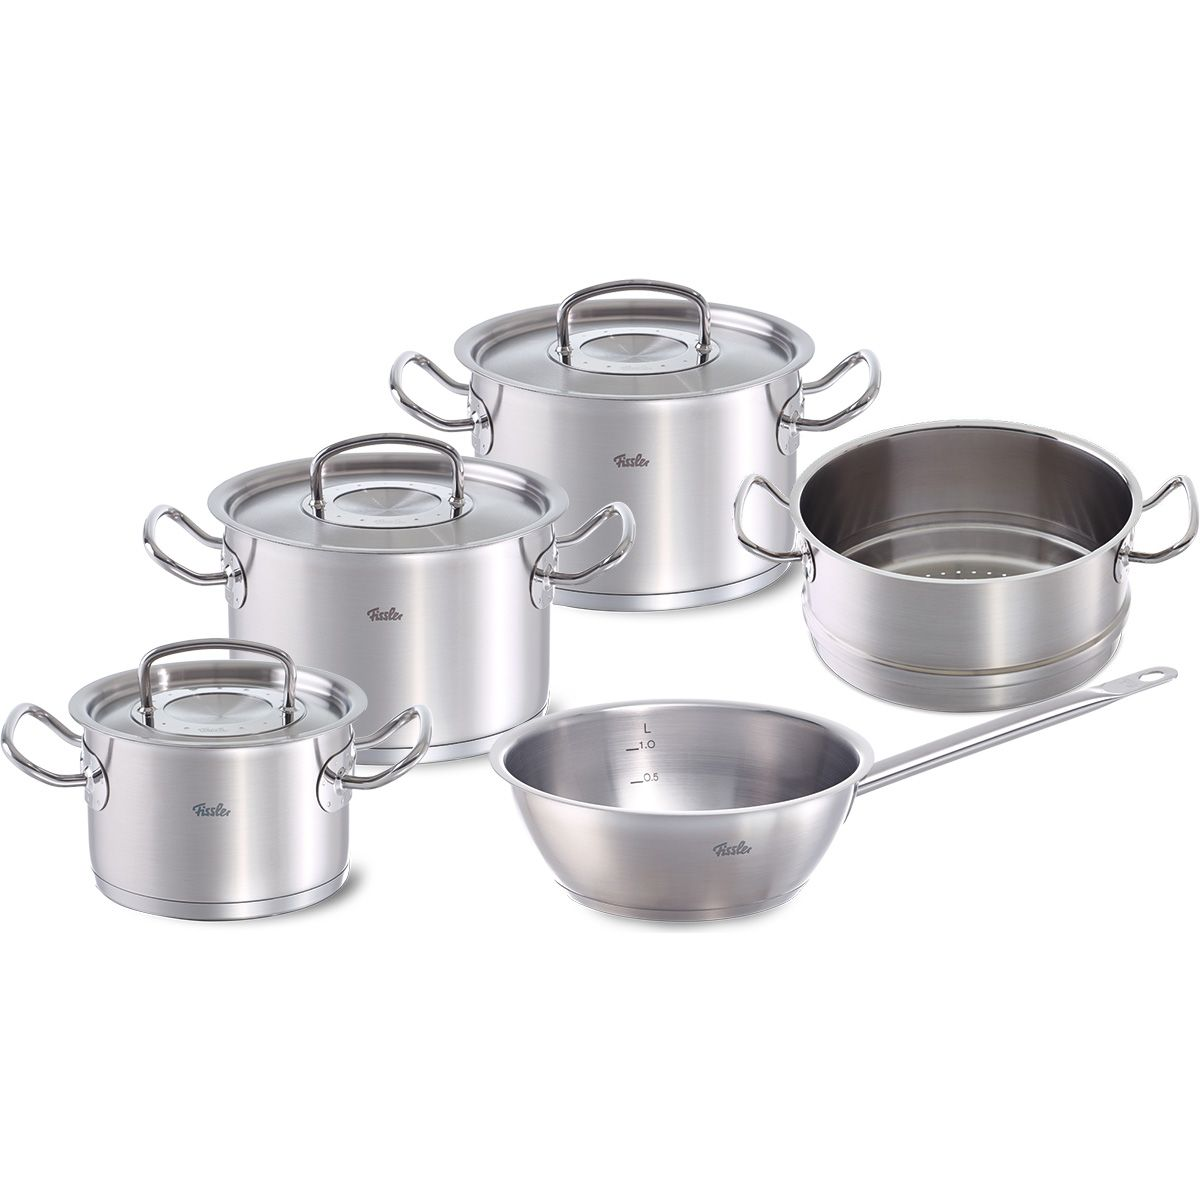 Fissler Original Profi Collection Topf Set Mit Dämpfeinsatz 5 Tlg